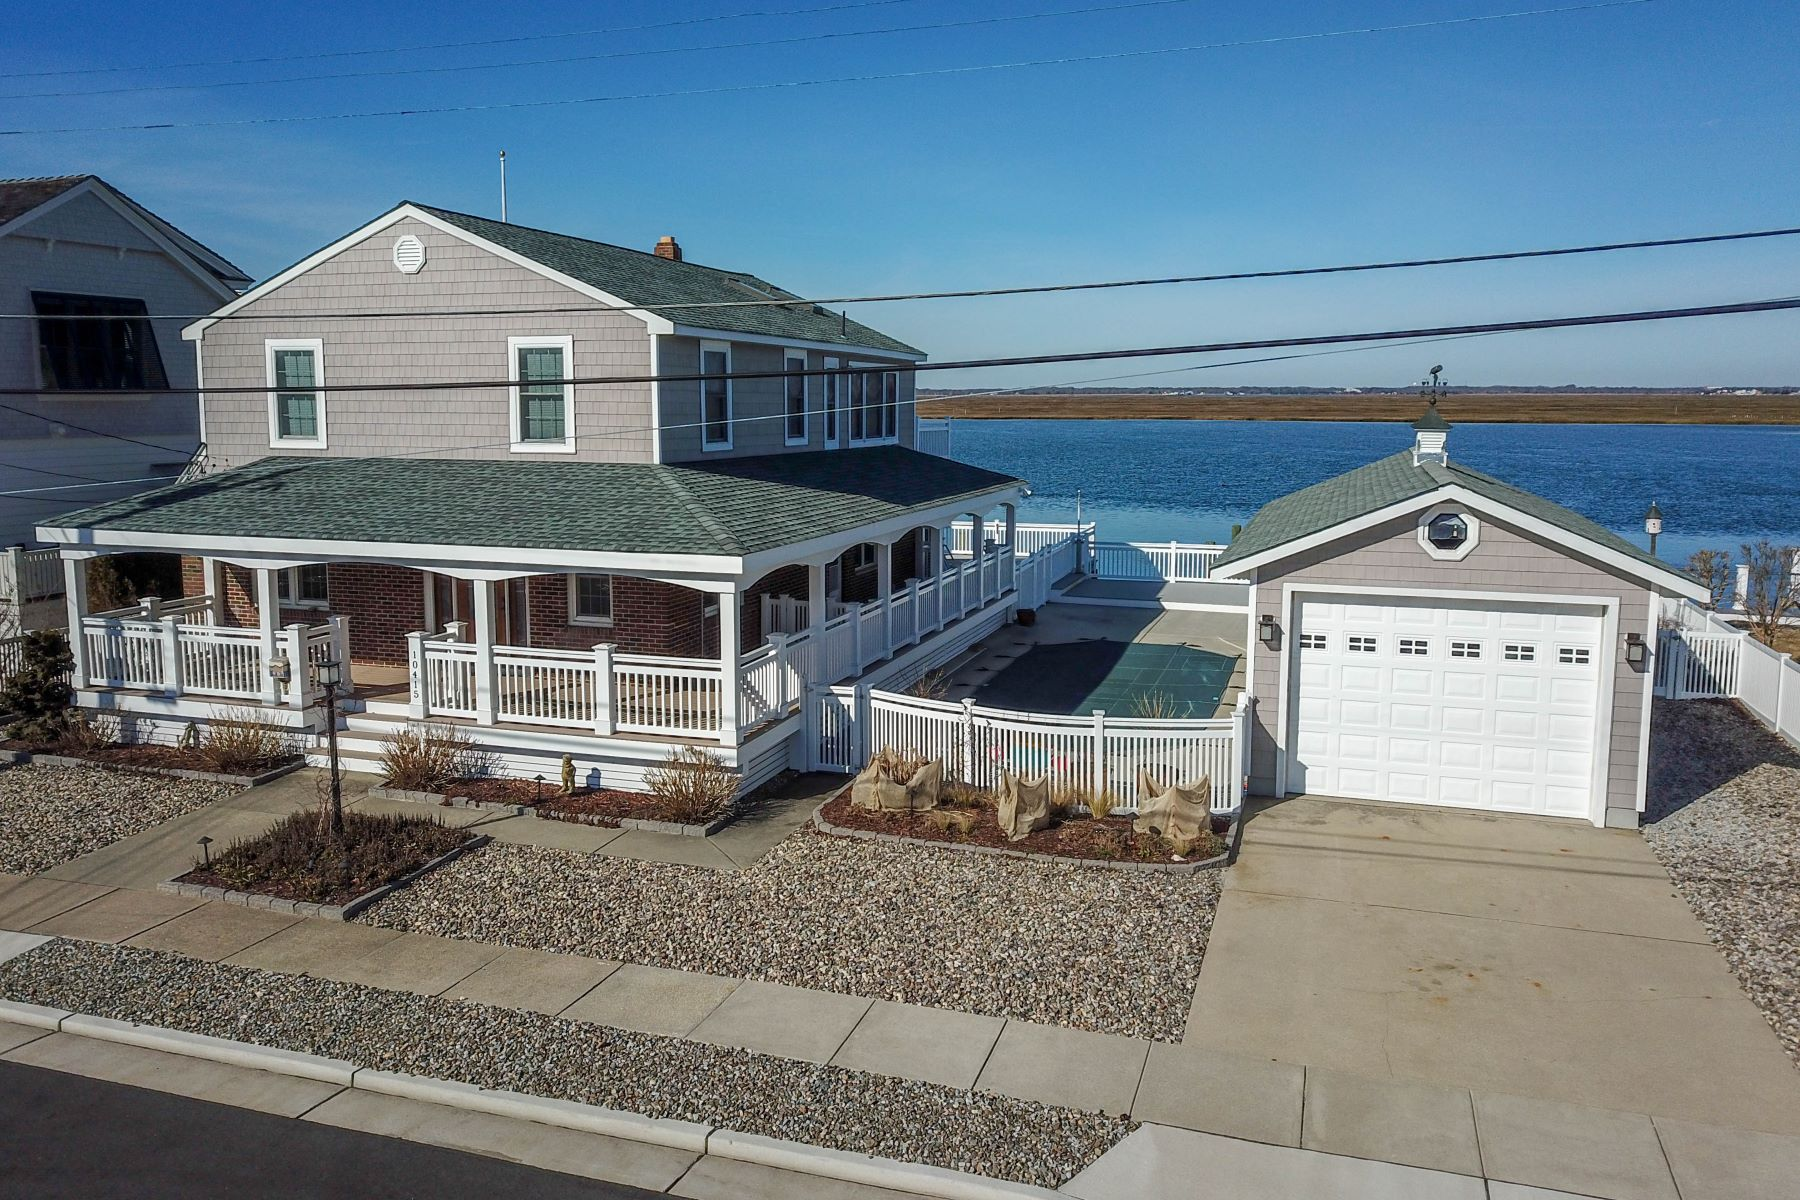 Single Family Home for Sale at Exceptional Stone Harbor Bayfront 10415 Golden Gate Drive, Stone Harbor, New Jersey 08247 United States